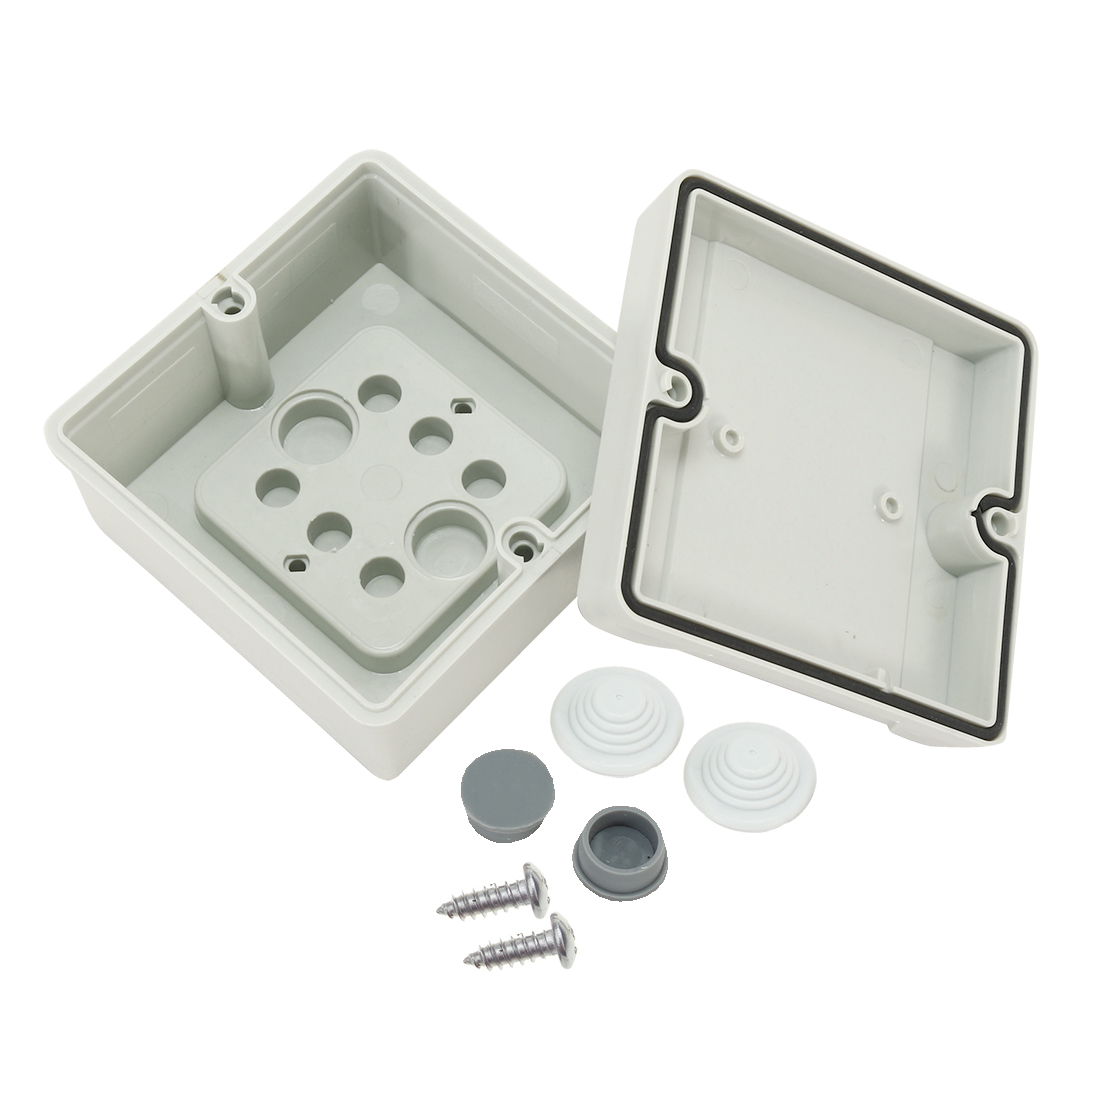 "3.9""x3.9""x2.4""(98mmx98mmx61mm) ABS Flame Retardant Dustproof IP66 Junction Box Universal Project Enclosure"